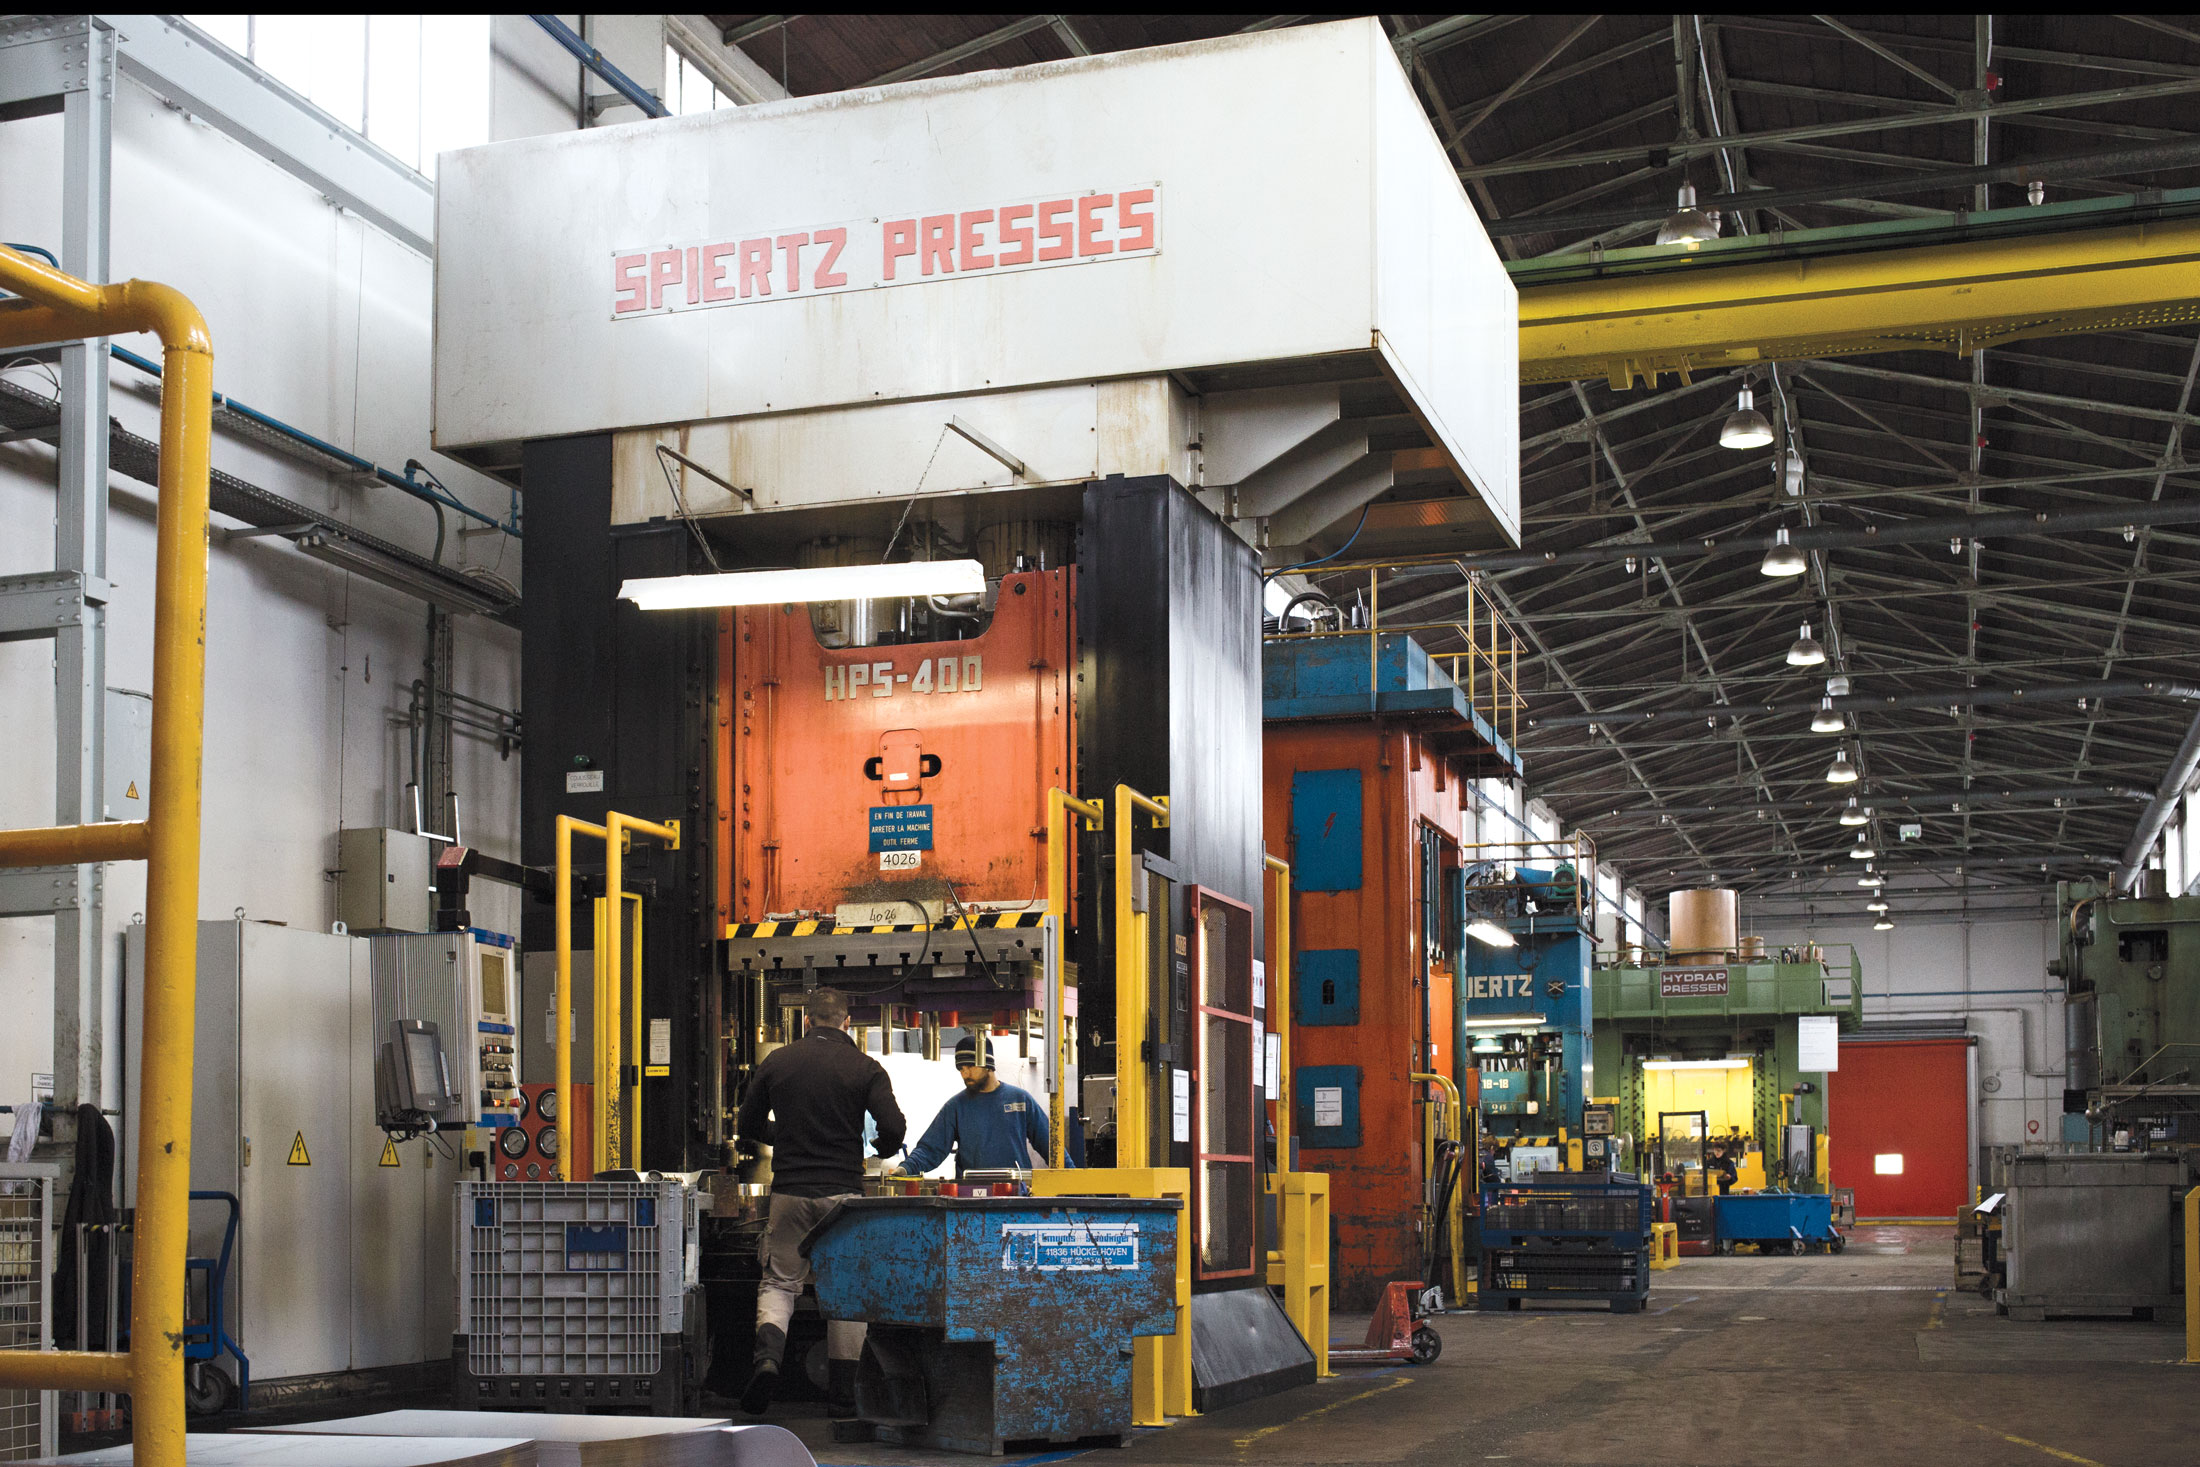 A 20-foot-tall press can apply up to 650 tons of pressure to shape individual steel oven panels.(Photo: Monika Hoefler/Surface)